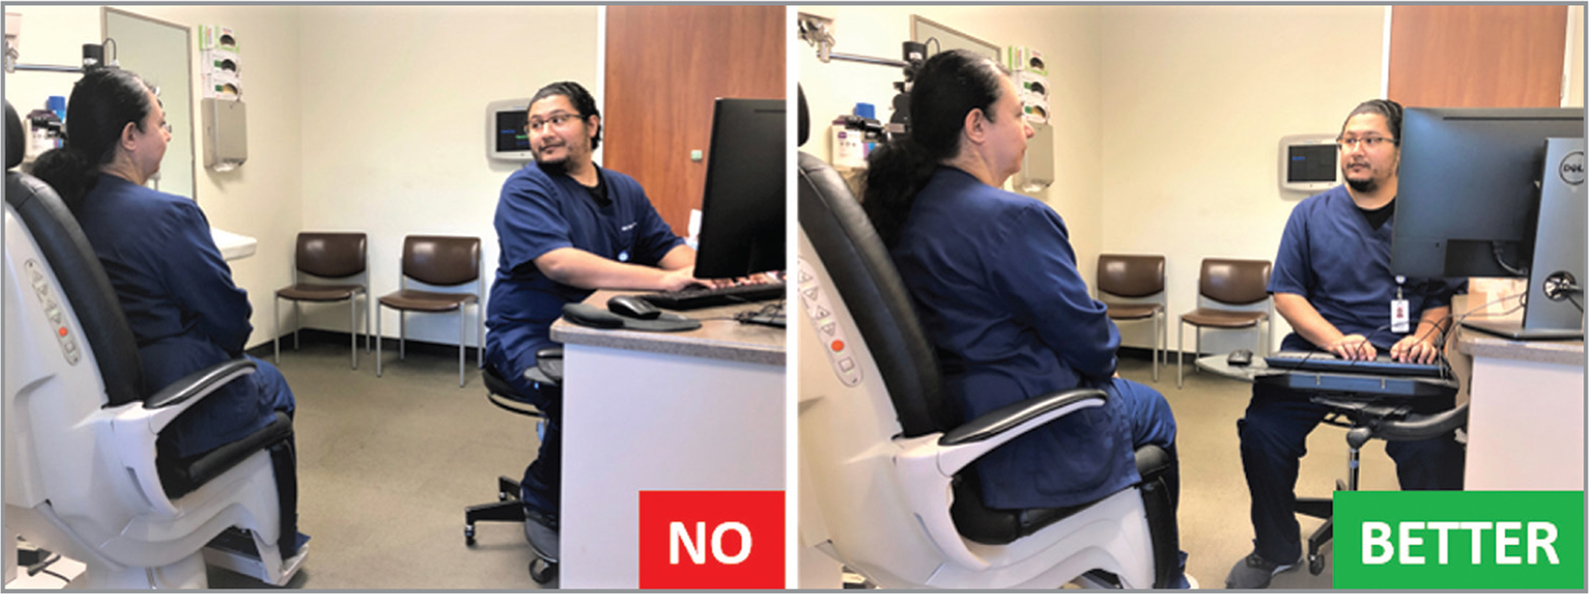 Left: The position of the computer relative to the patient is inducing a severe head turn, causing strain on the neck, back, and upper limbs. Right: Moving the computer and rotating the patient's chair allows the provider to face the patient more comfortably.